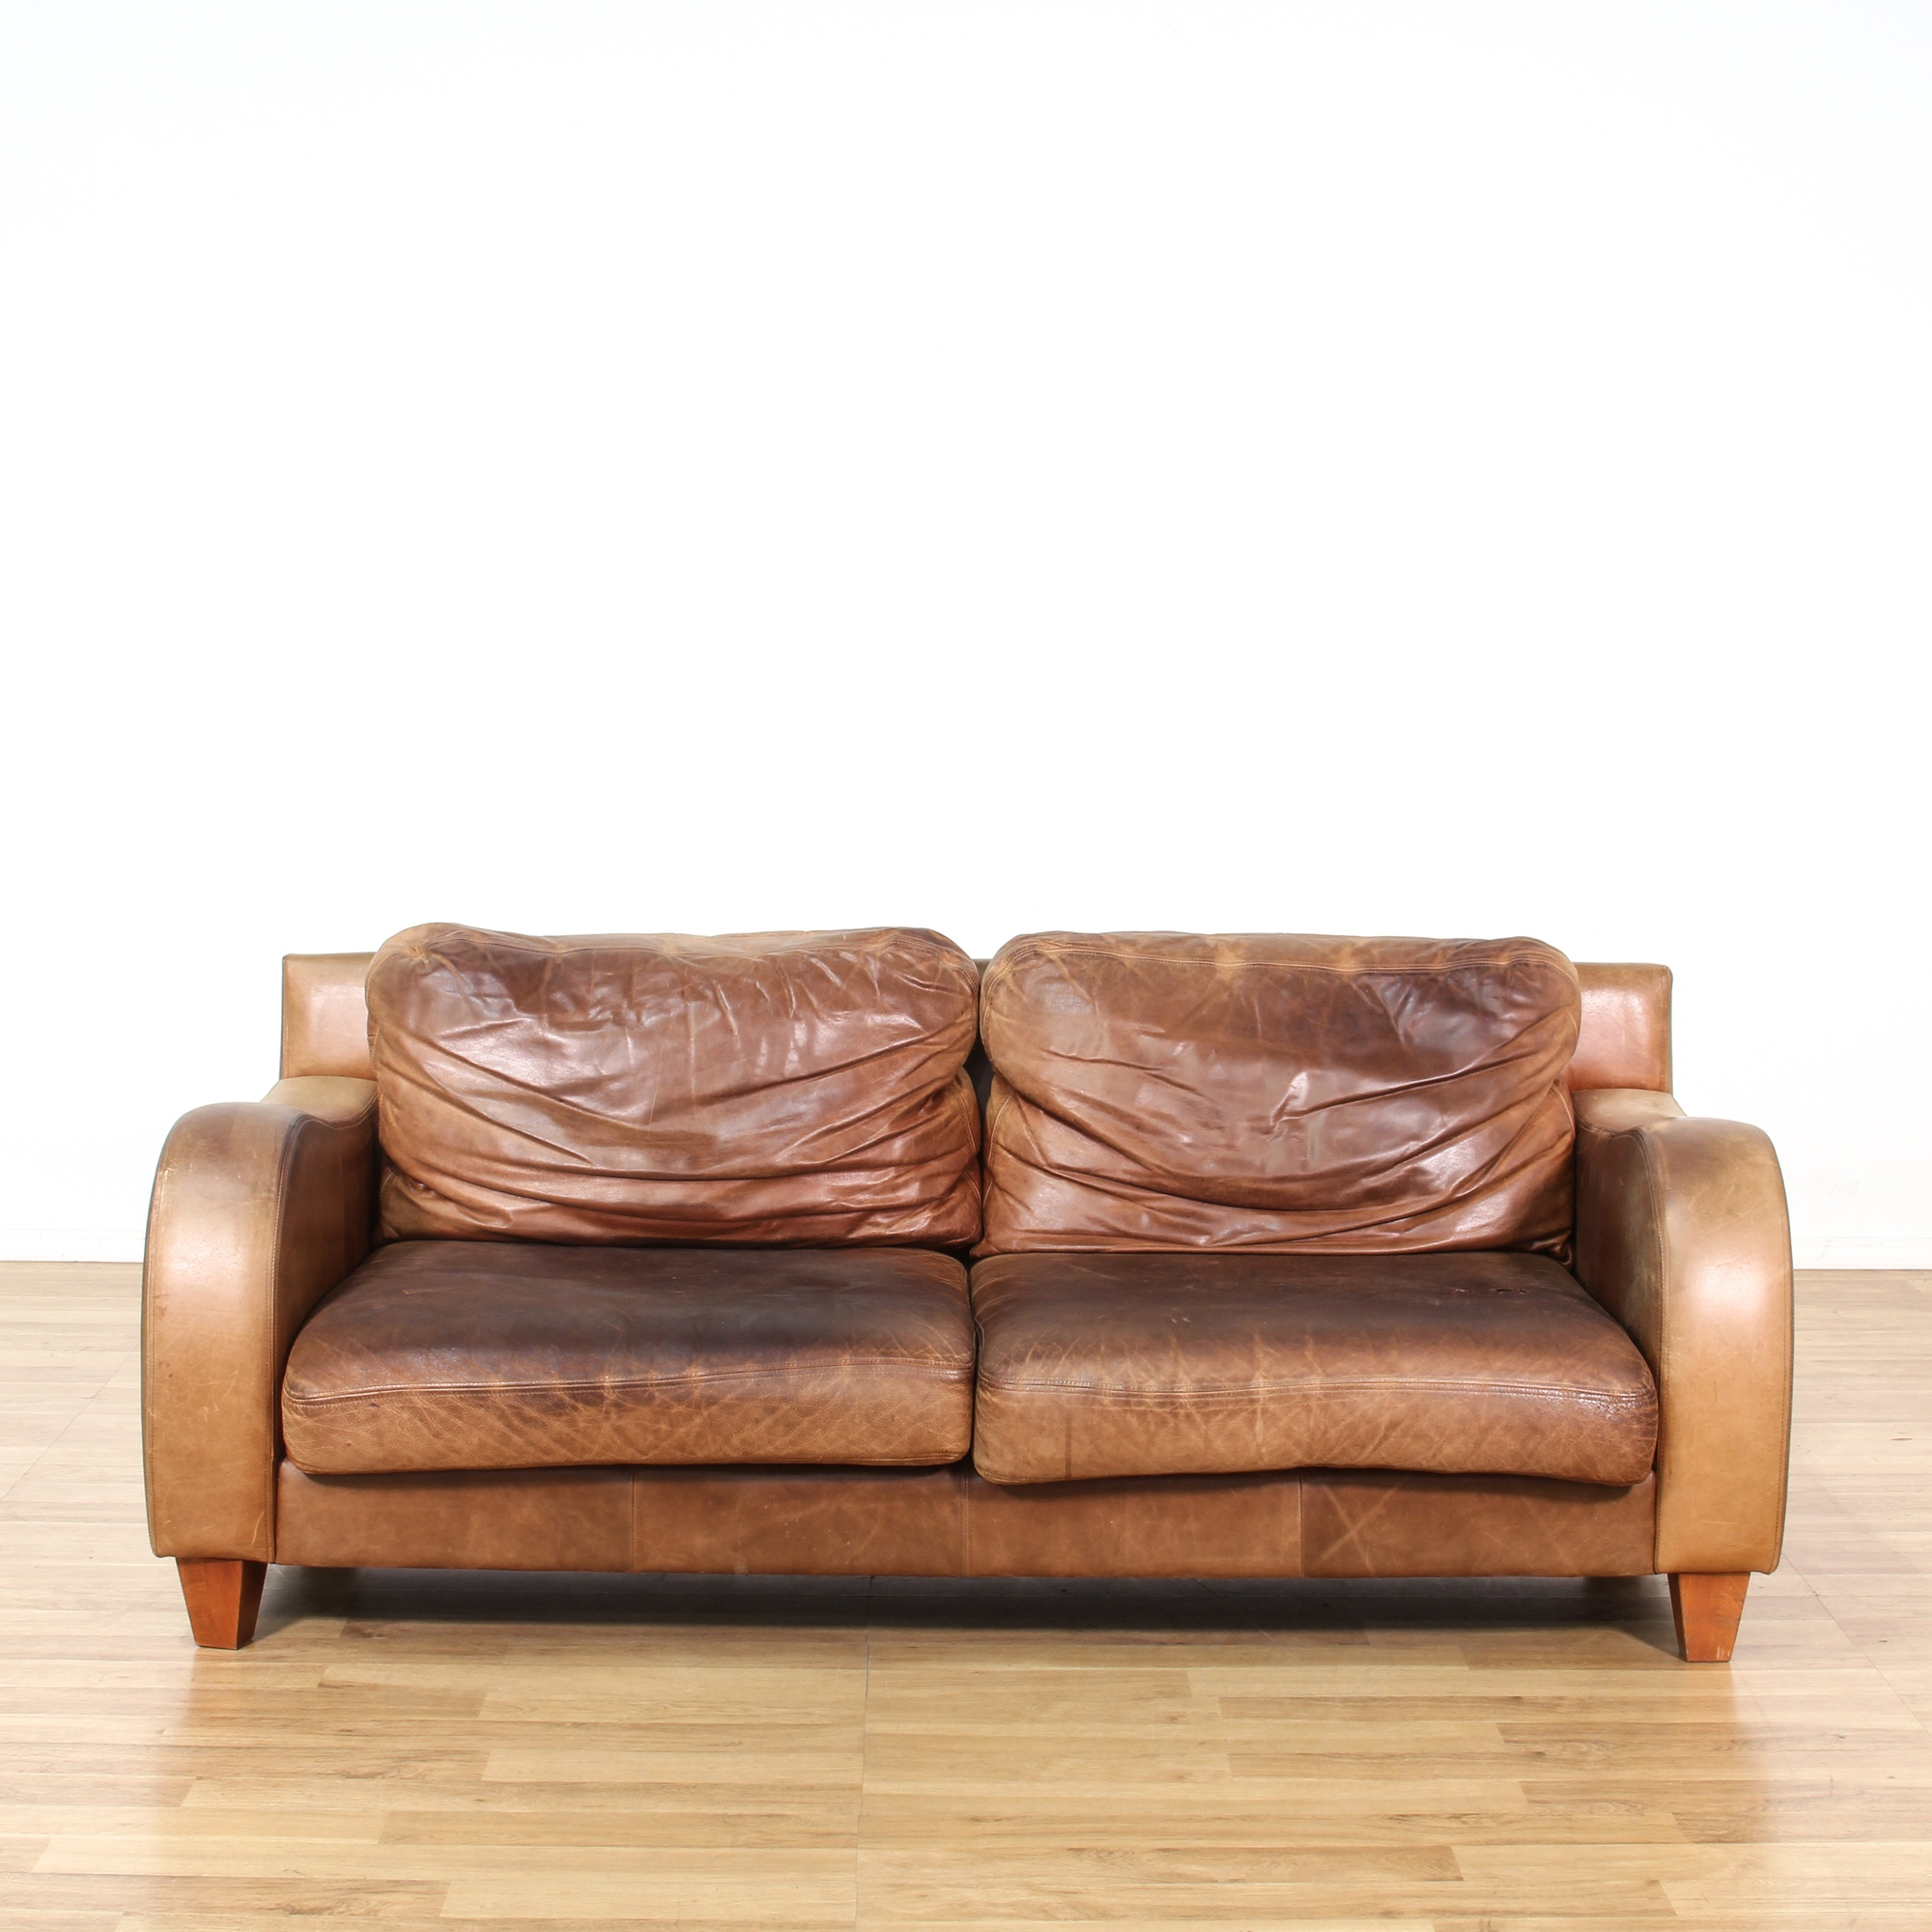 Leather Sofas In Los Angeles: Brown Leather Sofa W/ Curved Arms